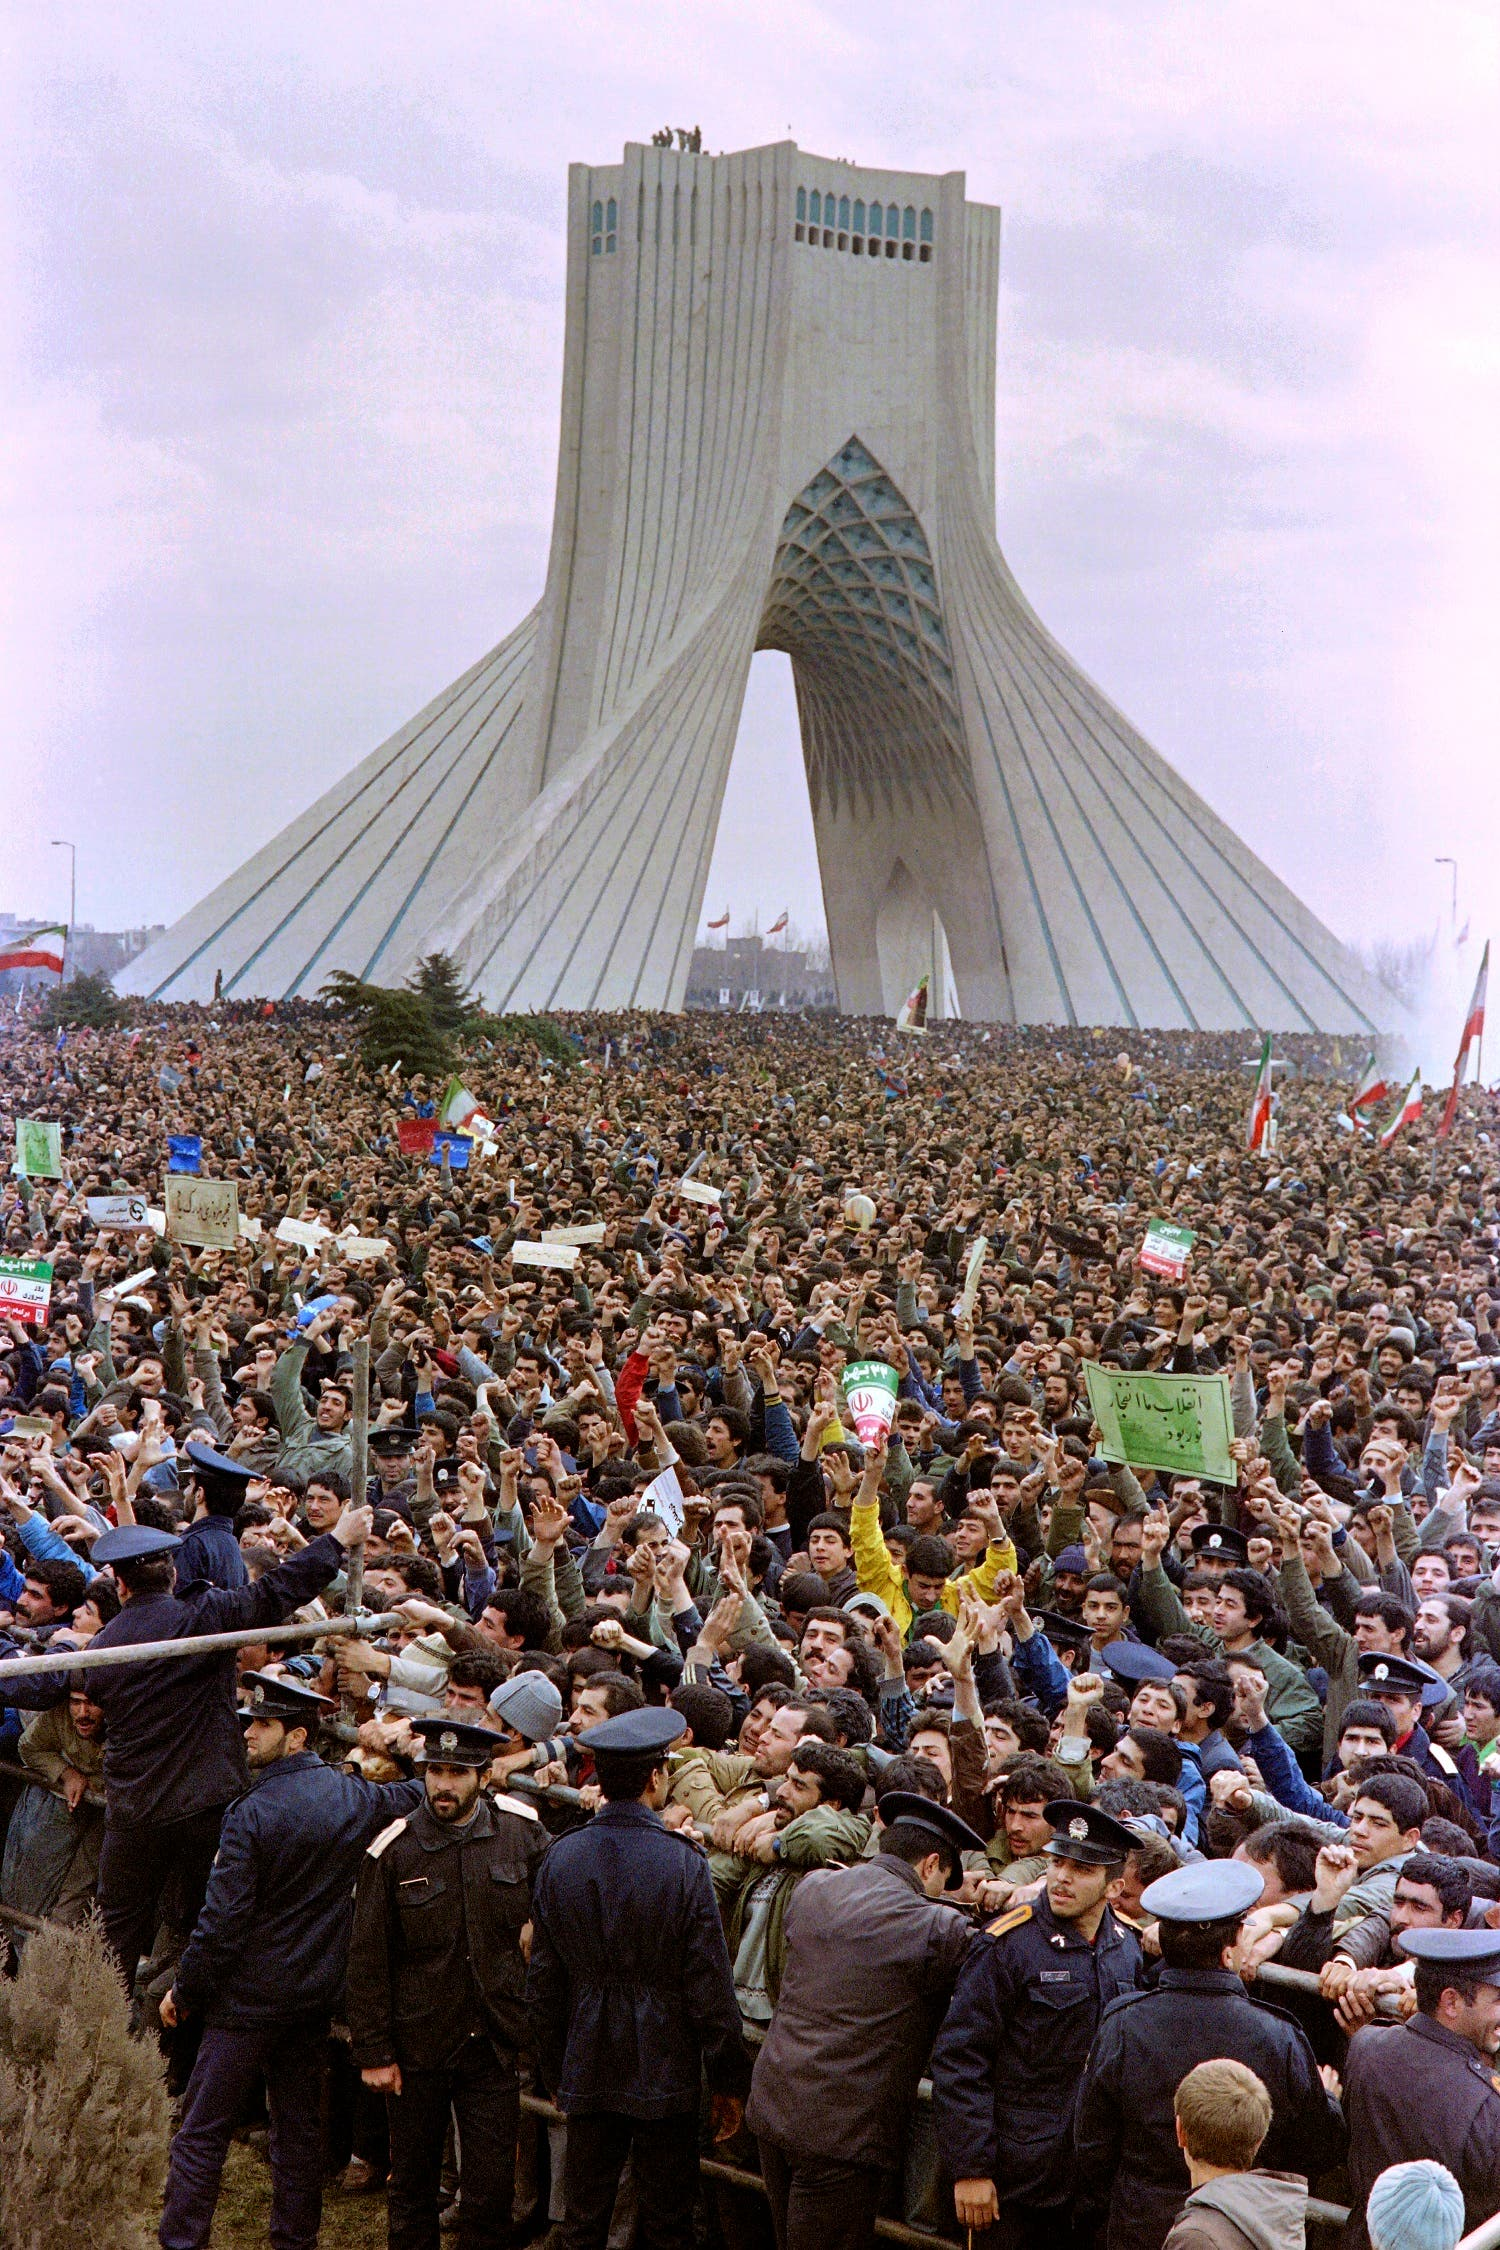 This February 17, 1989 Tehran photo shows Iranian people gathered in front of the Azadi Tower for the 10th anniversary of the plan, marking the Islamic revolution. (AFP)